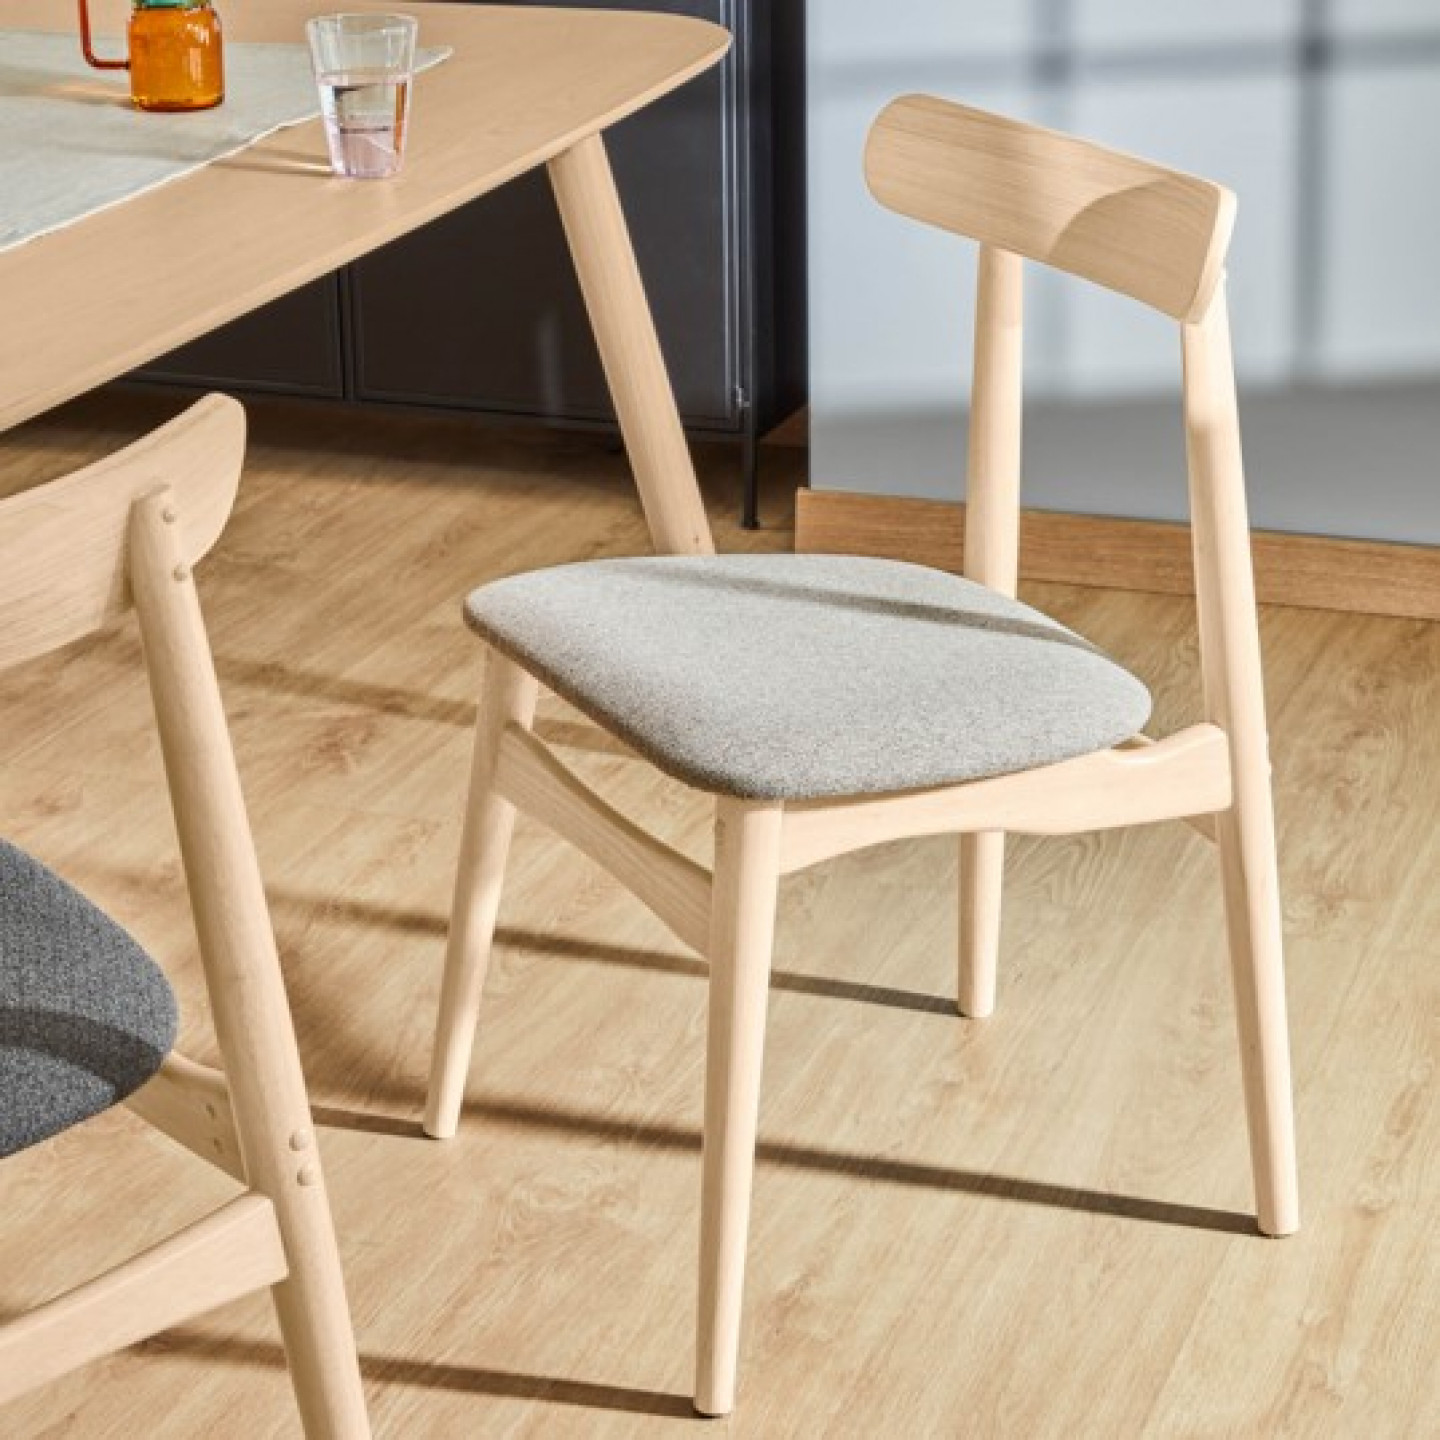 Chair Nayme | Beige & Light Wood